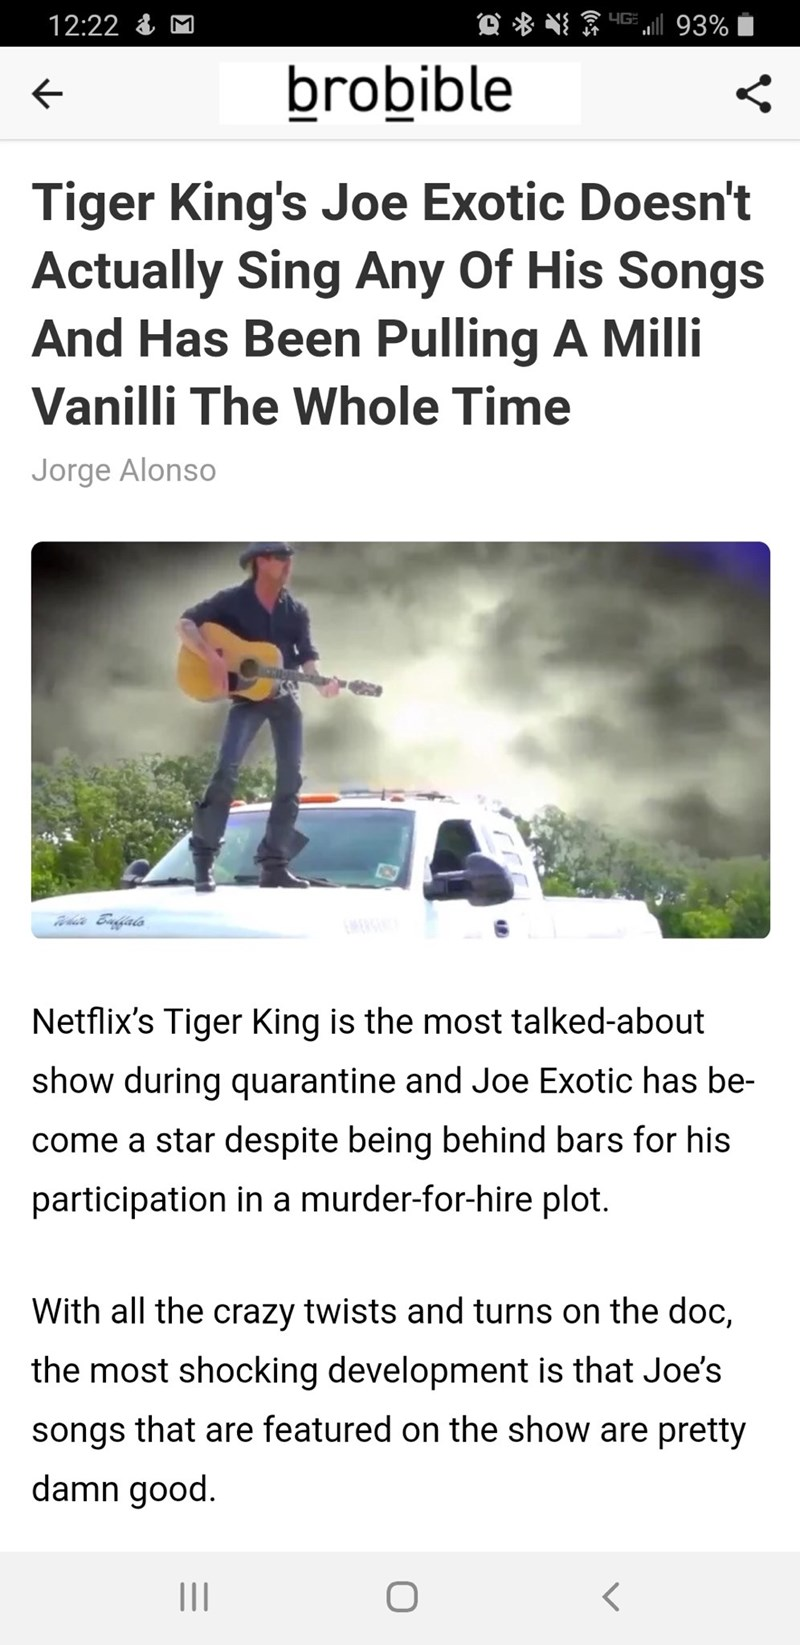 Text - 12:22 & M YG 93% brobible Tiger King's Joe Exotic Doesn't Actually Sing Any Of His Songs And Has Been Pulling A Milli Vanilli The Whole Time Jorge Alonso EMERSEN Netflix's Tiger King is the most talked-about show during quarantine and Joe Exotic has be- come a star despite being behind bars for his participation in a murder-for-hire plot. With all the crazy twists and turns on the doc, the most shocking development is that Joe's songs that are featured on the show are pretty damn good. II